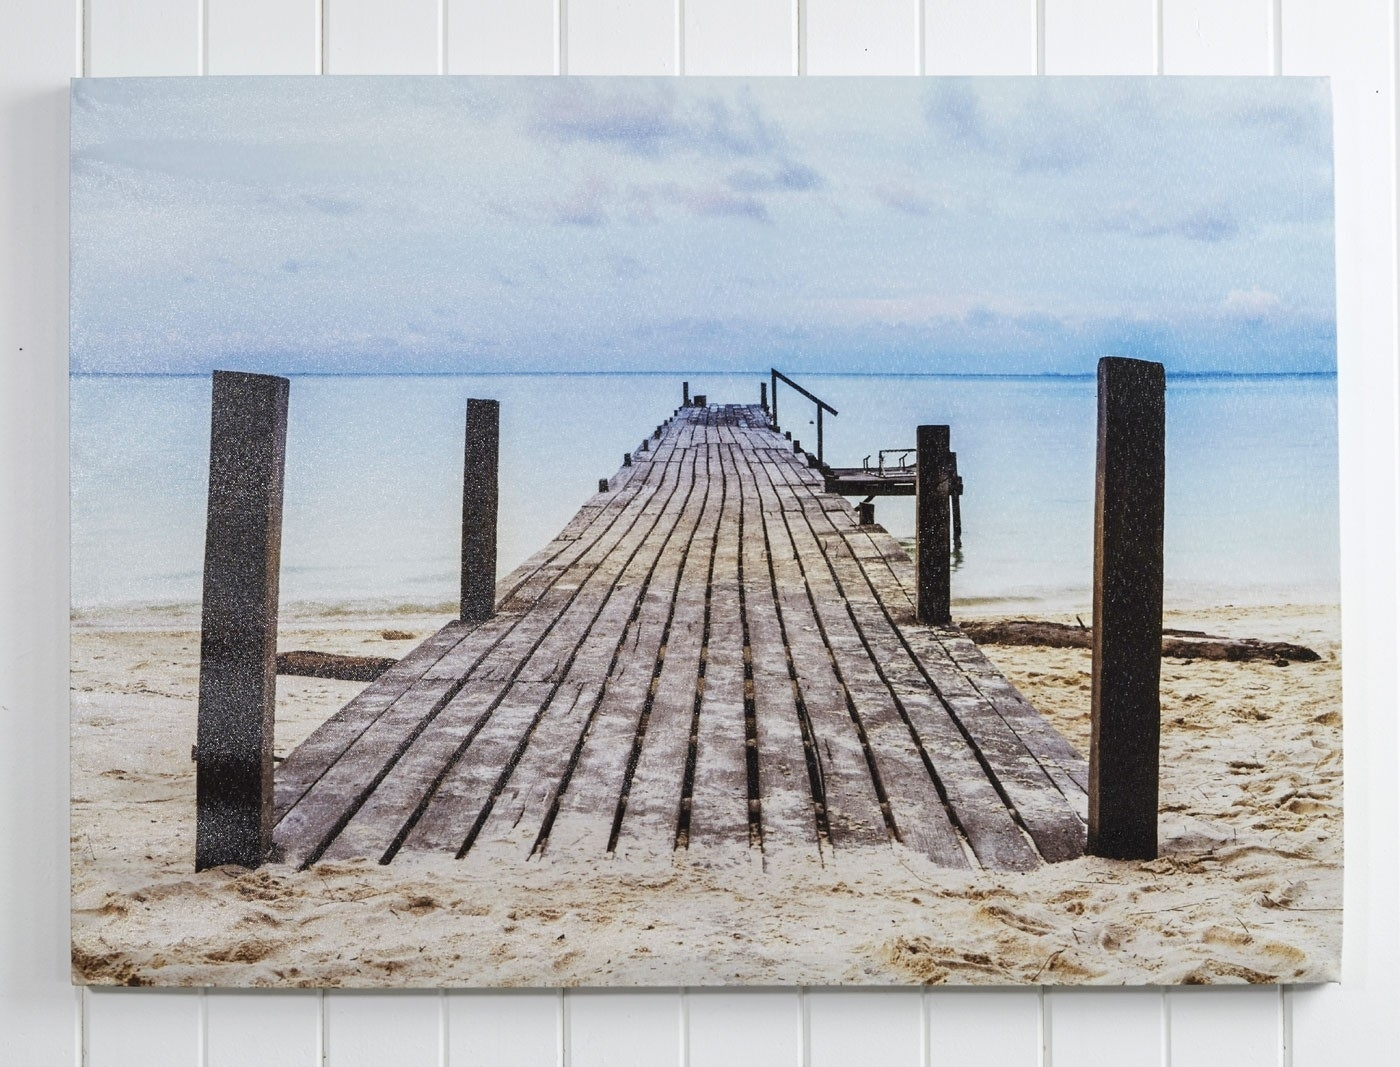 Canvas Wall Art Jetty – Black/ Blue Intended For 2018 Jetty Canvas Wall Art (View 6 of 15)